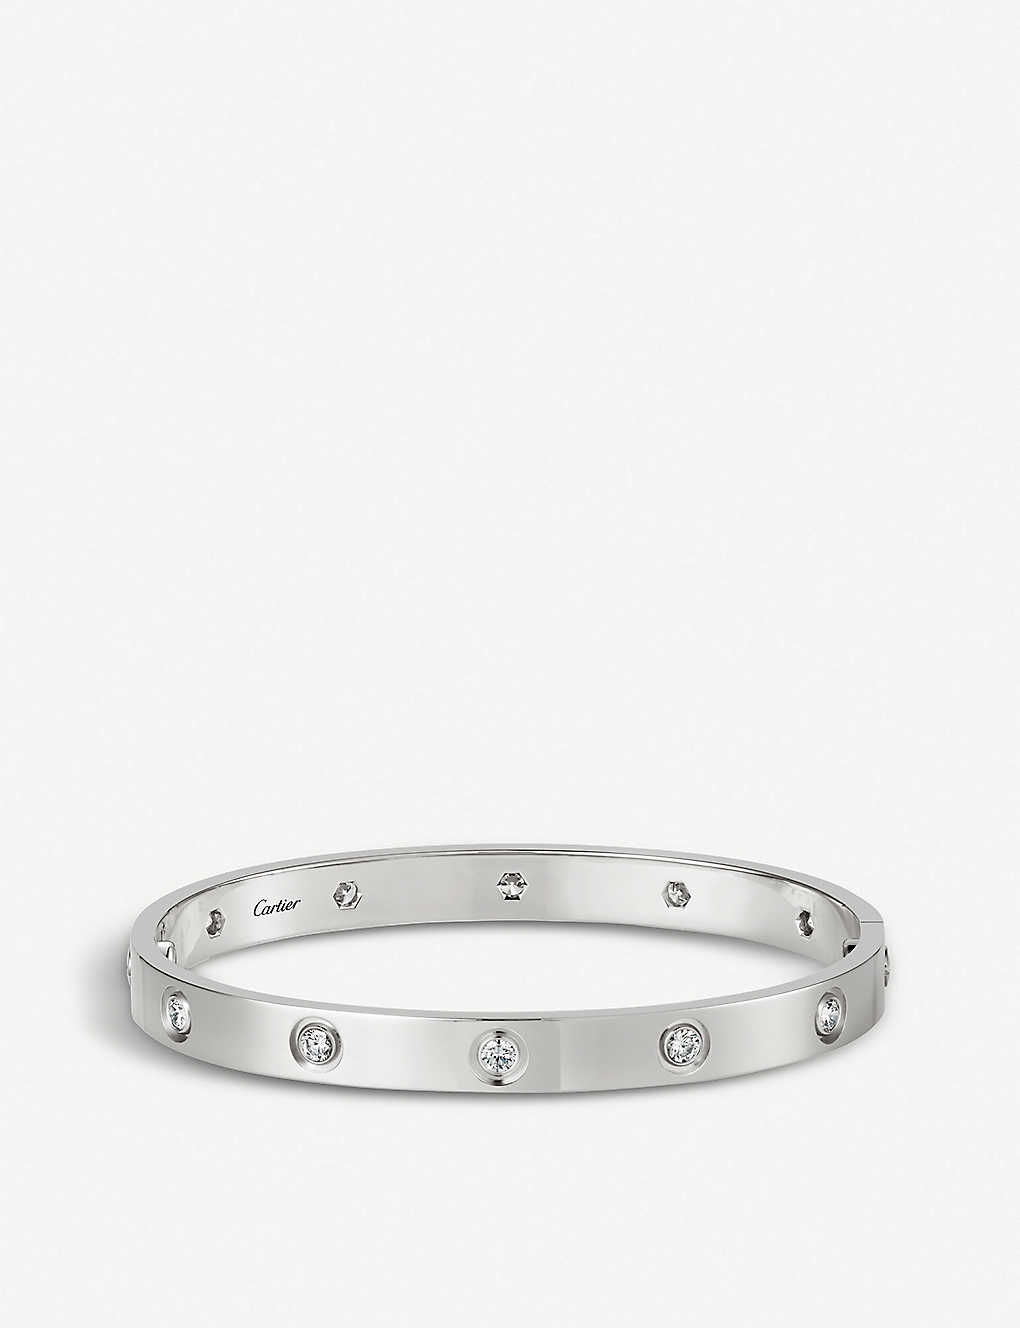 CARTIER: LOVE 18ct white-gold and diamond bracelet